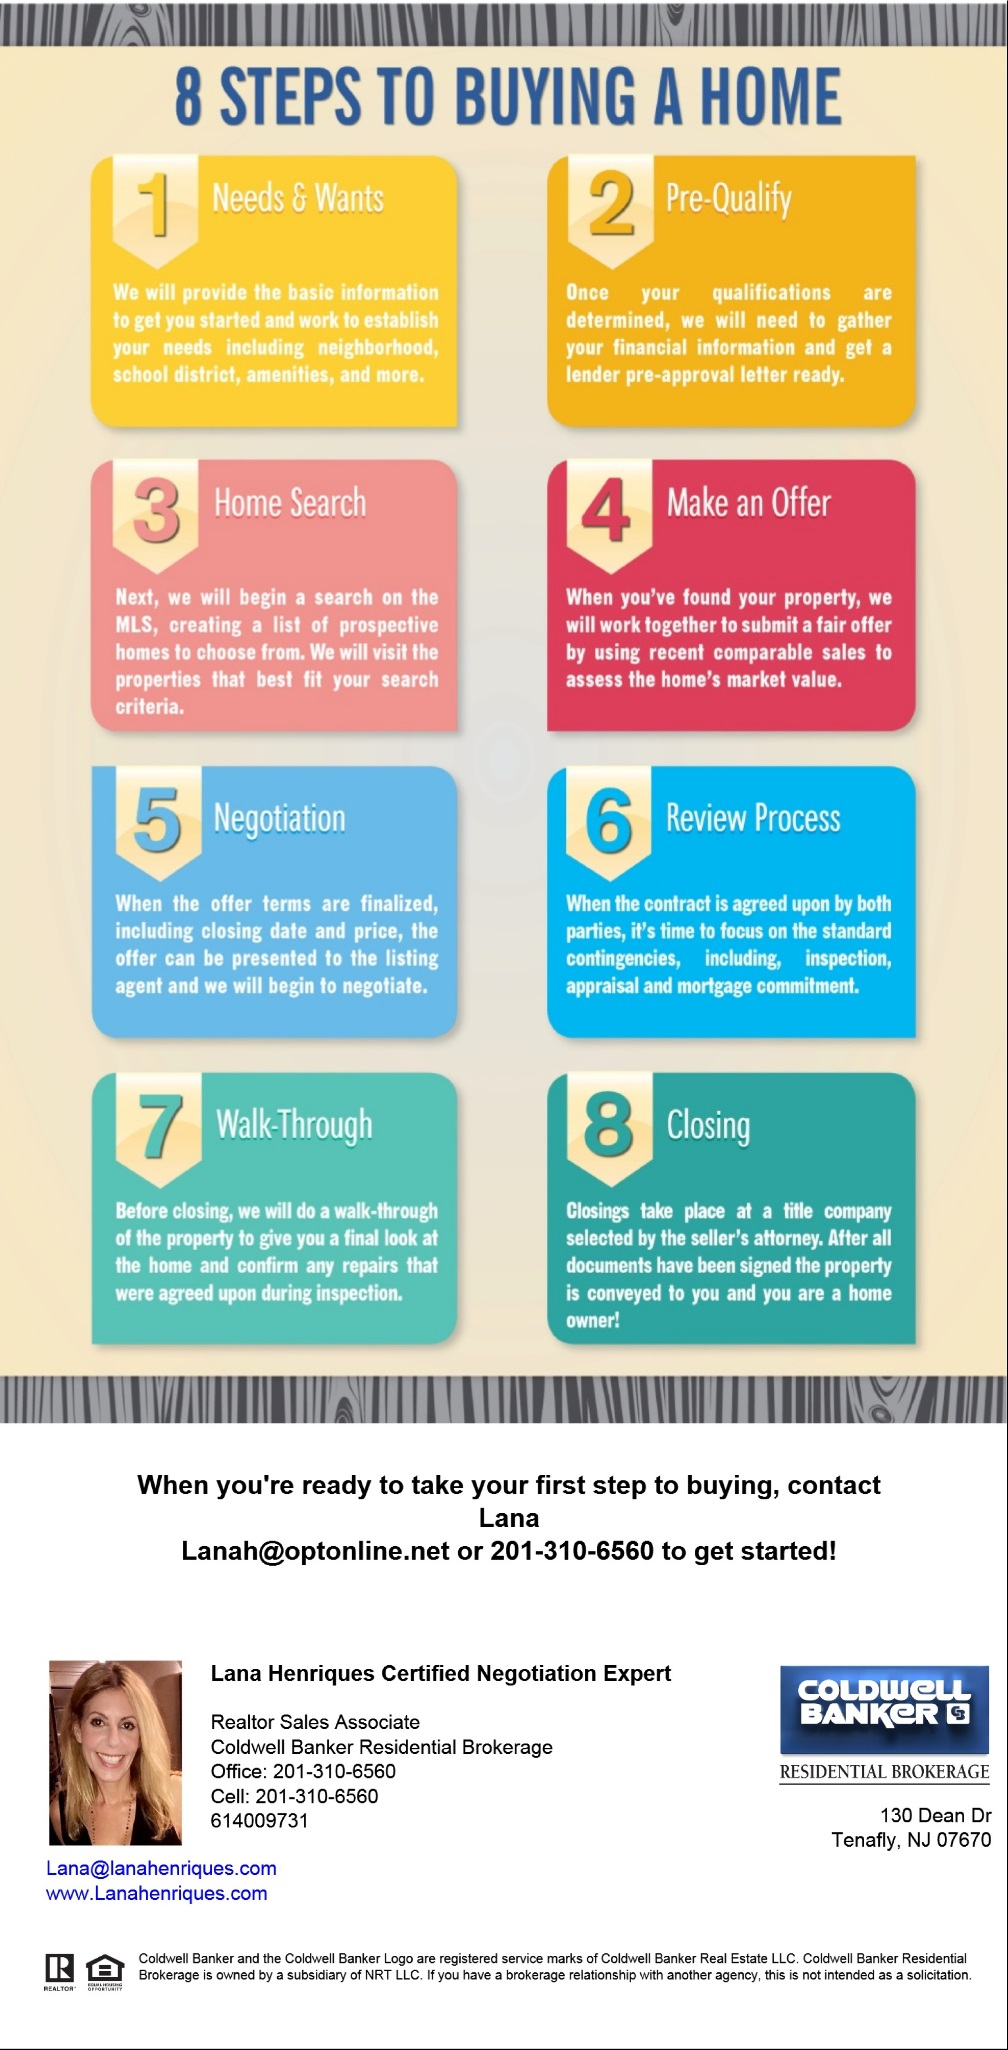 8 Steps To Buying A Home-Lana